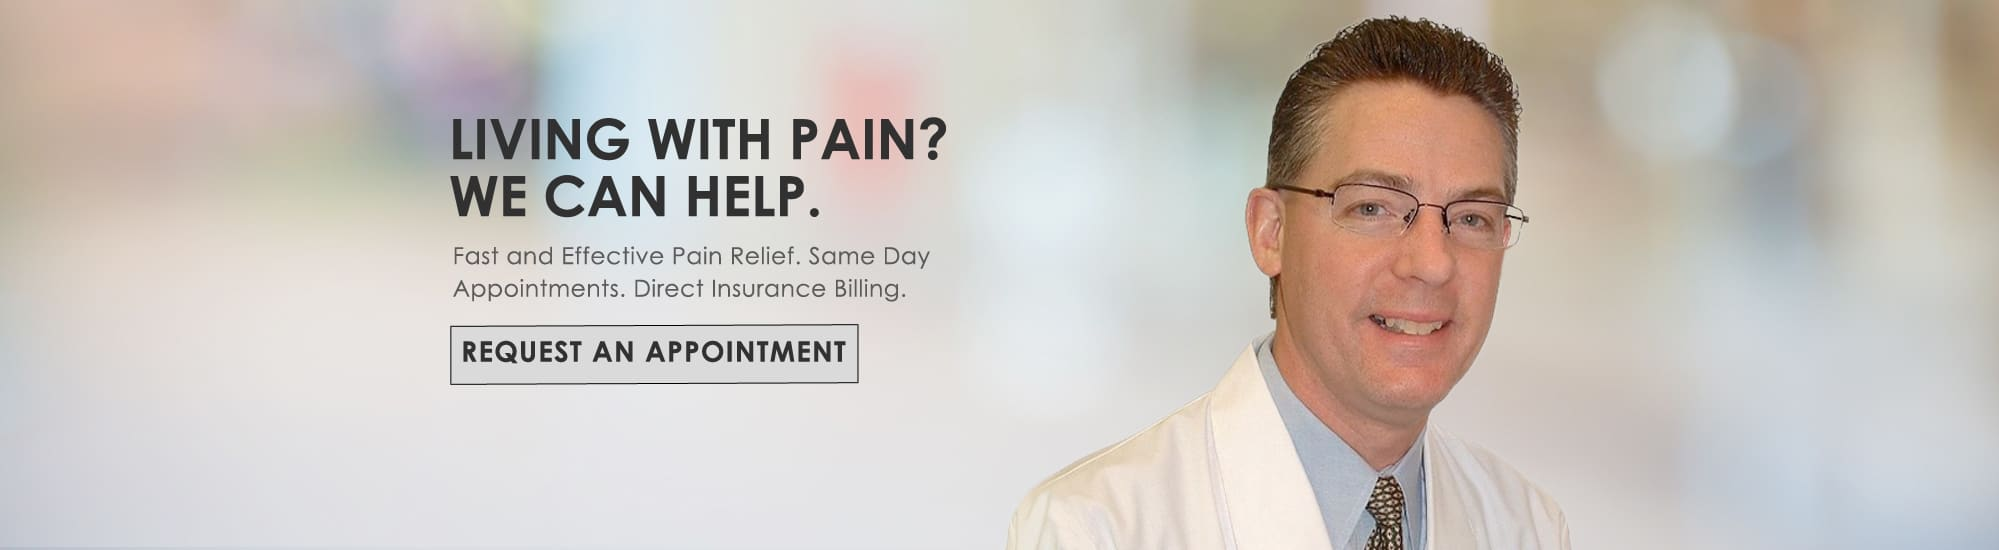 we can help your pain slider